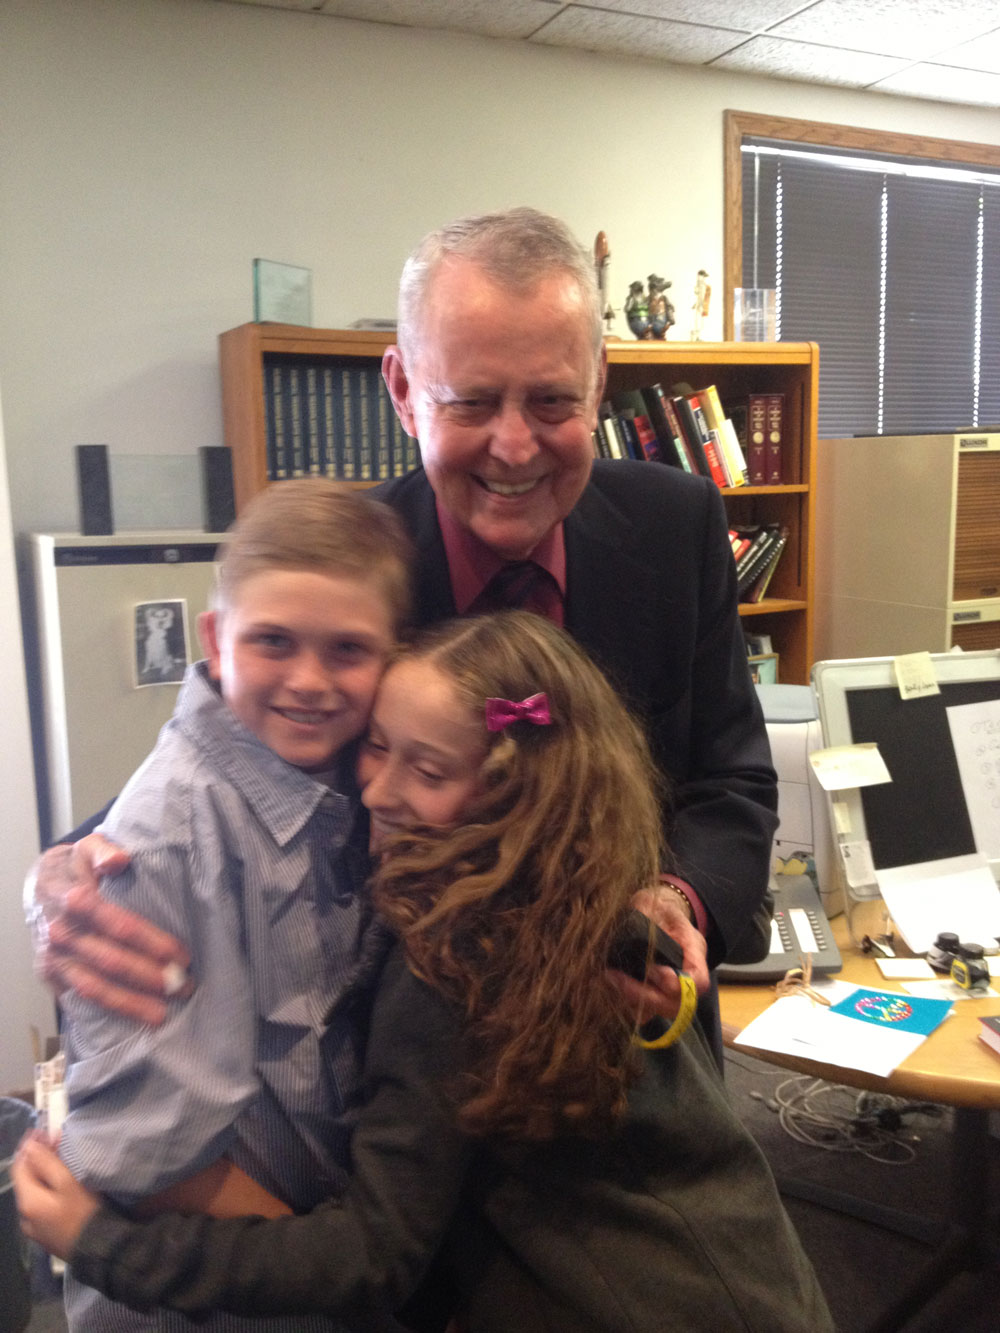 Nick and Lexi with Dr. Thomas Starzl (who performed the first successful liver transplant) 2013